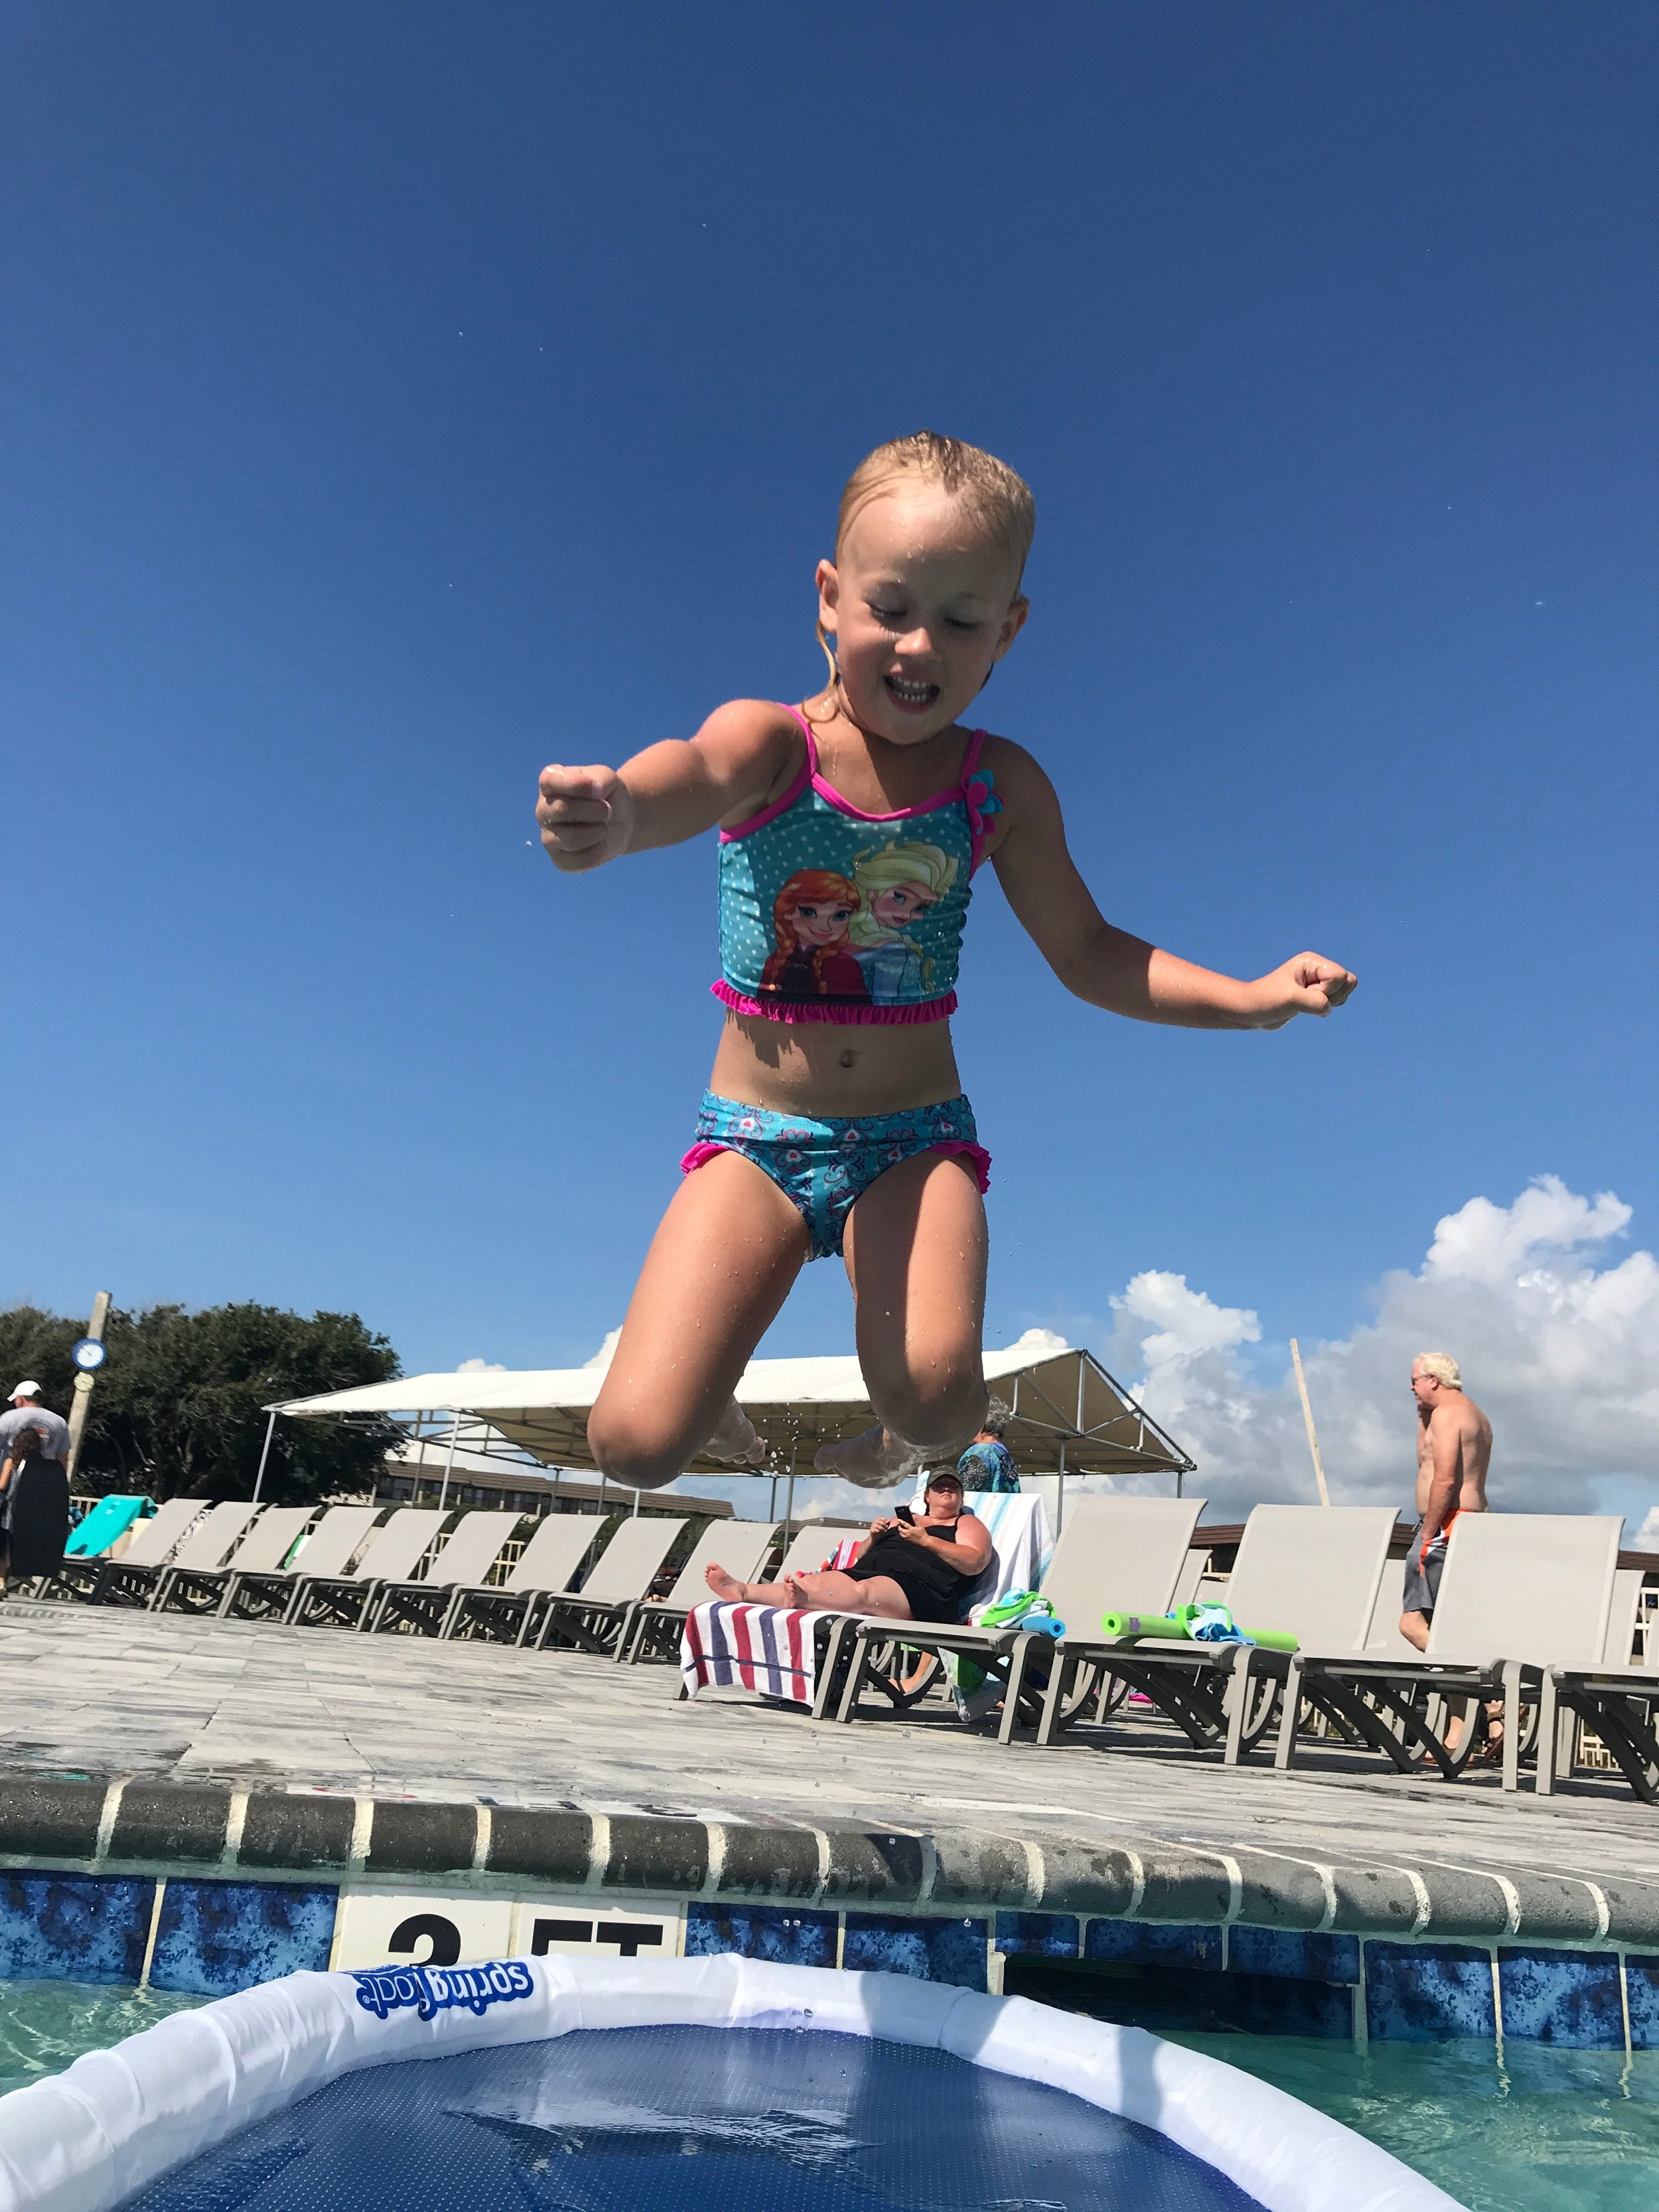 Memory Making Moments - This picture of my granddaughter is one of them; one of memory making moments! Summer vacation, jumping in the pool, laughing, staying up late to walk the beach. . . all fun memories.